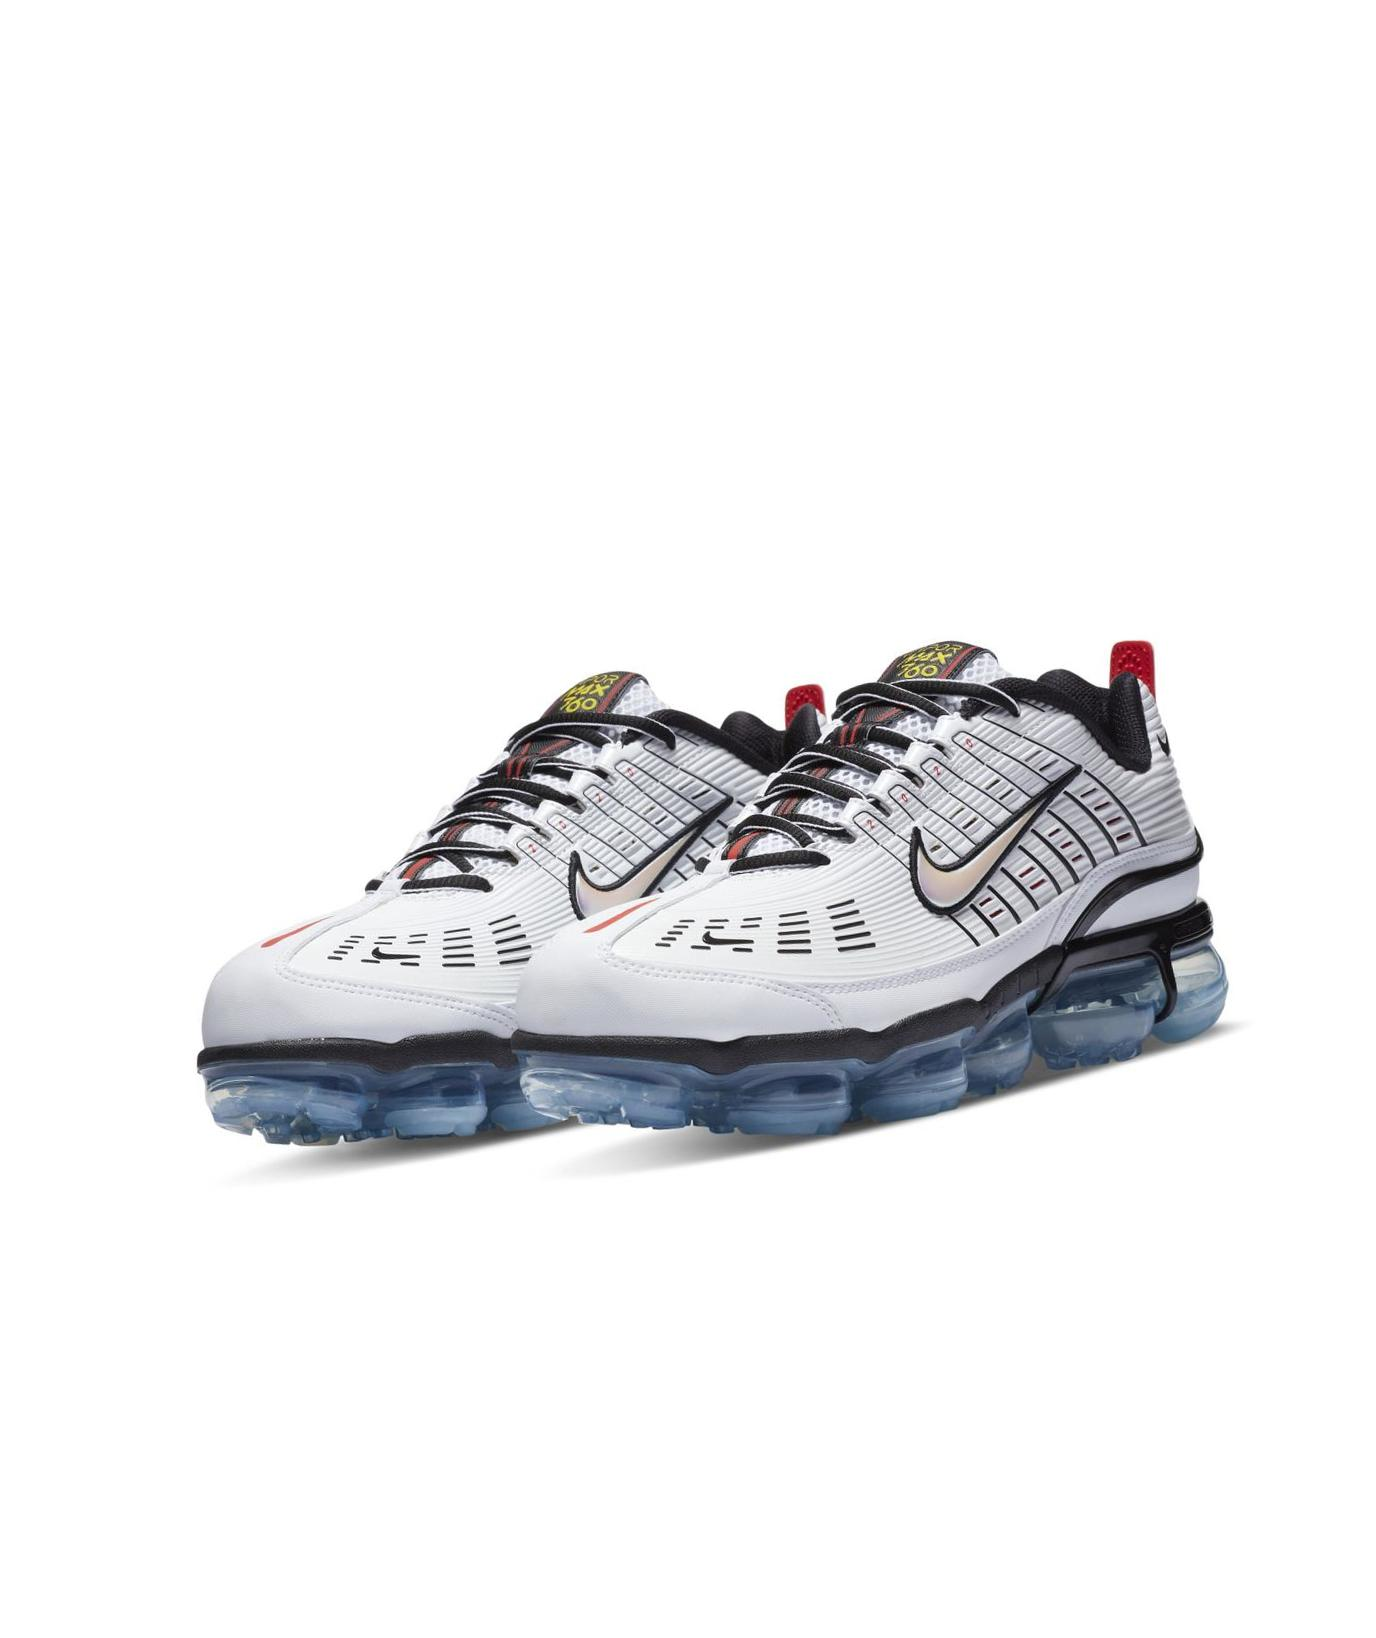 Nike Air VaporMax 360 White/Black/Speed Yellow/White